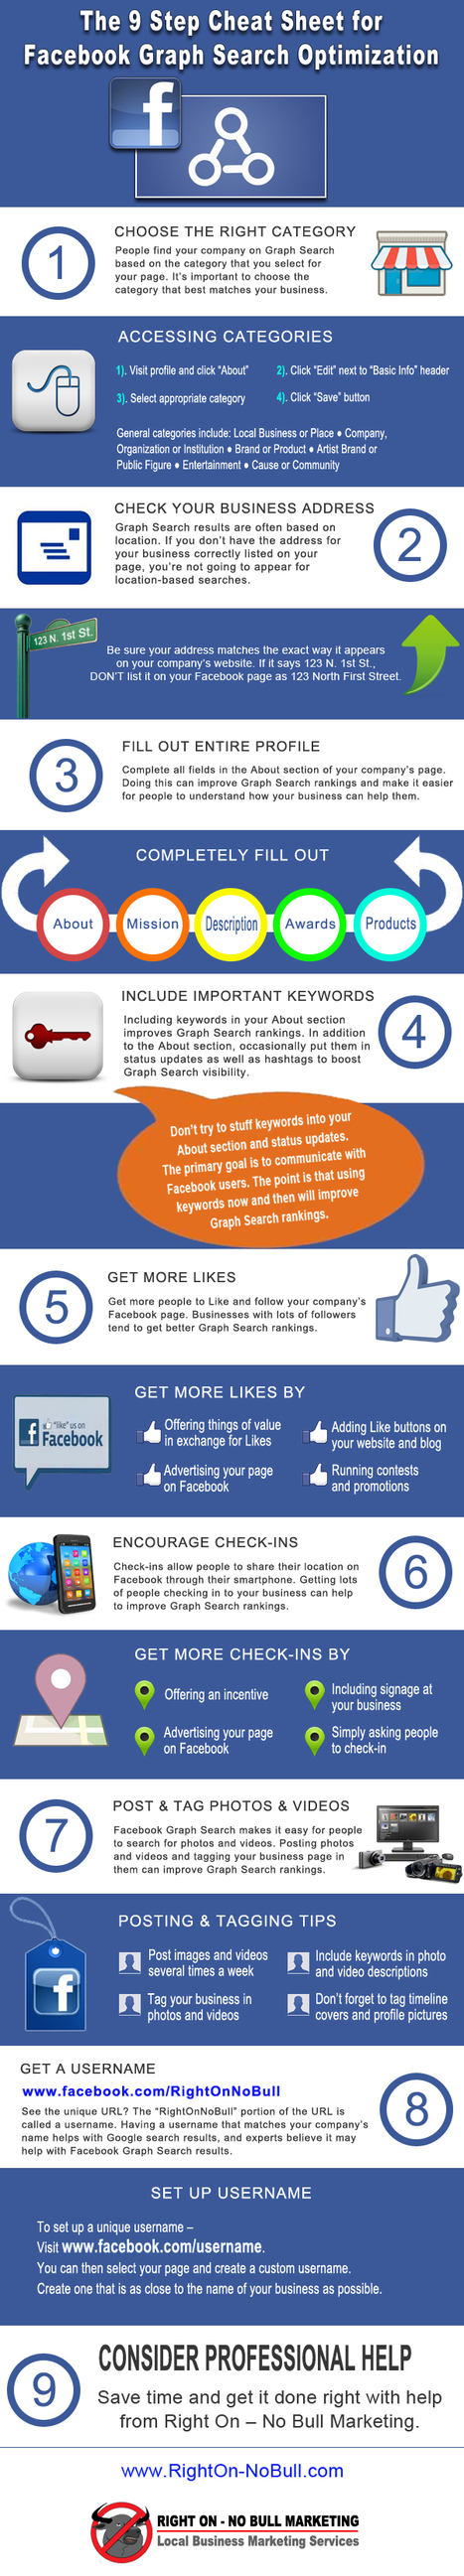 9 Steps for Facebook Graph Search Optimization [INFOGRAPHIC] | Personal Branding and Professional networks - @Socialfave @TheMisterFavor @TOOLS_BOX_DEV @TOOLS_BOX_EUR @P_TREBAUL @DNAMktg @DNADatas @BRETAGNE_CHARME @TOOLS_BOX_IND @TOOLS_BOX_ITA @TOOLS_BOX_UK @TOOLS_BOX_ESP @TOOLS_BOX_GER @TOOLS_BOX_DEV @TOOLS_BOX_BRA | Scoop.it